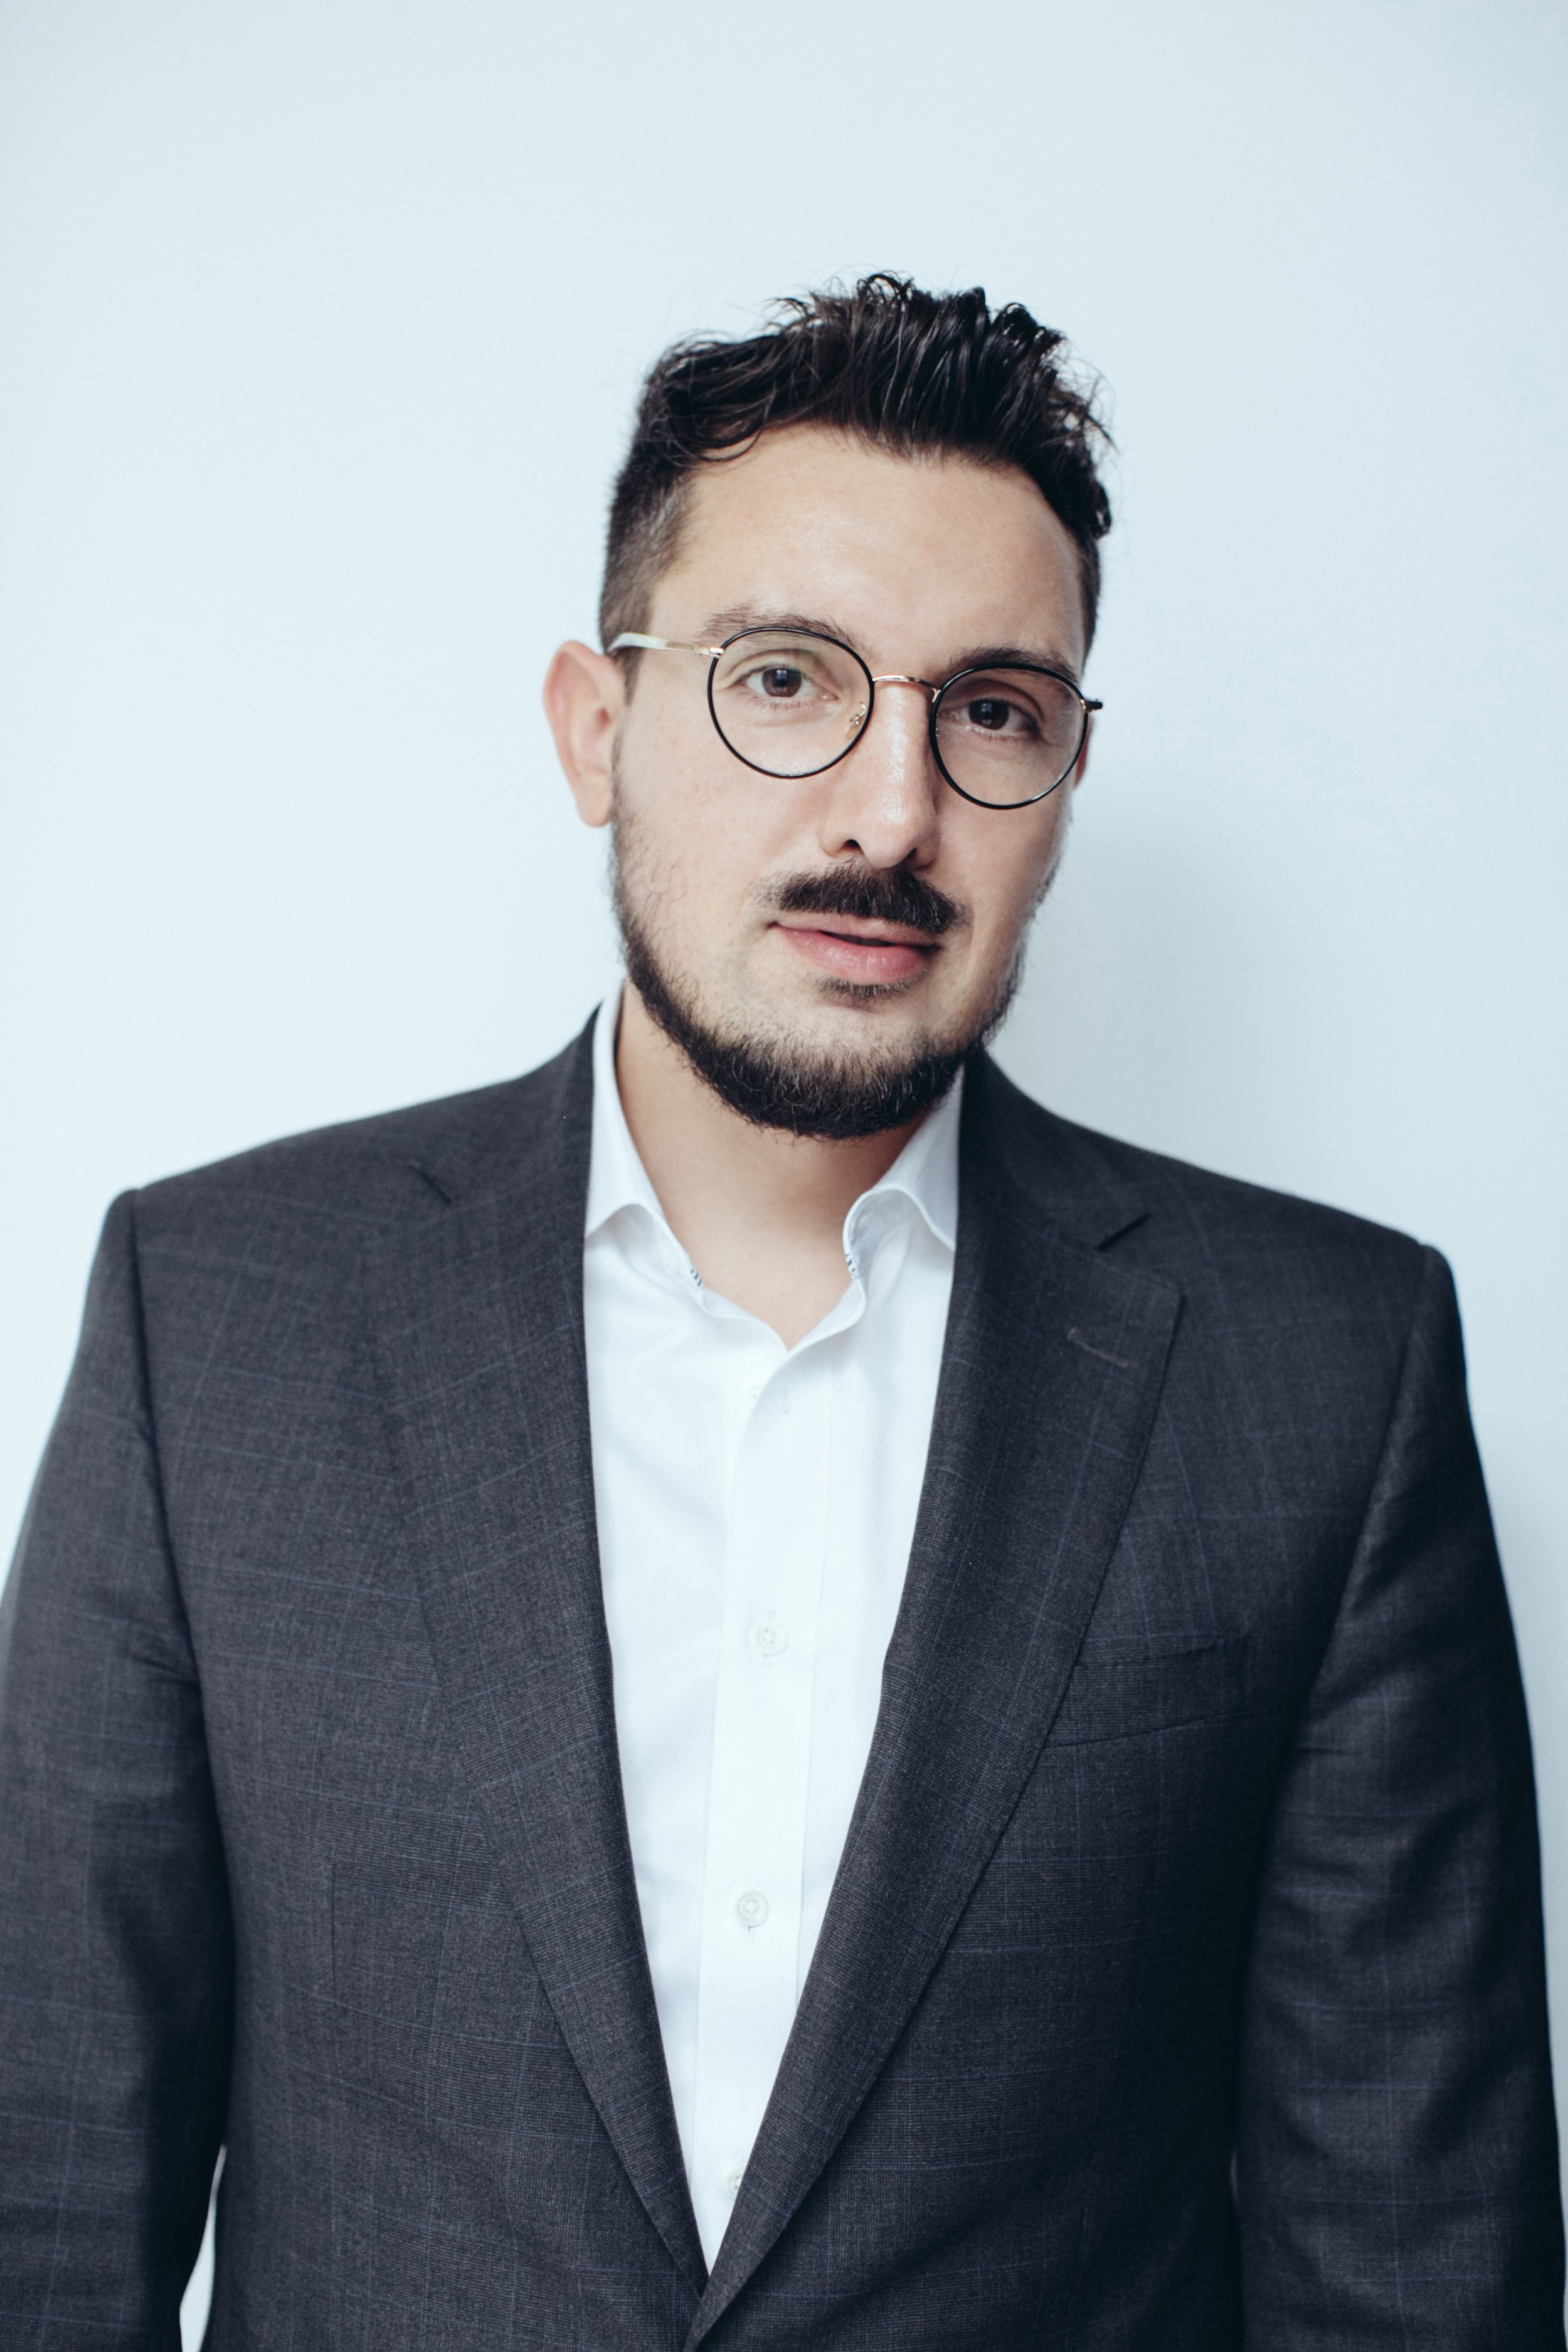 Vuk Magdelinic, CEO of Overbond